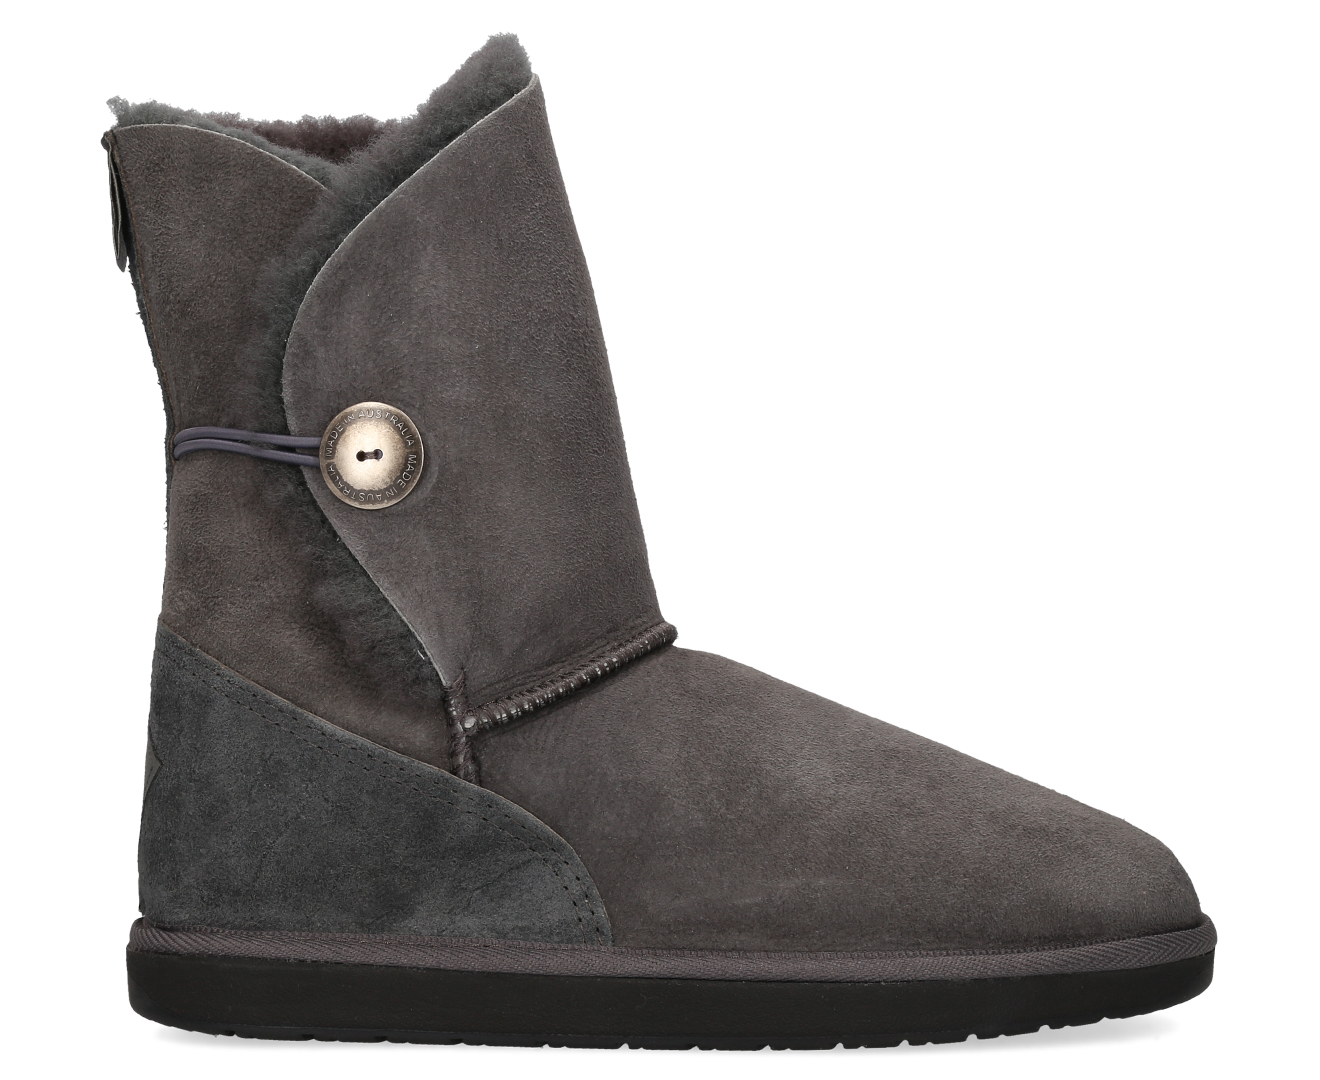 8f8d17b962e Details about Ugg Australia Brighton 3/4 Boot - Charcoal Australian Made